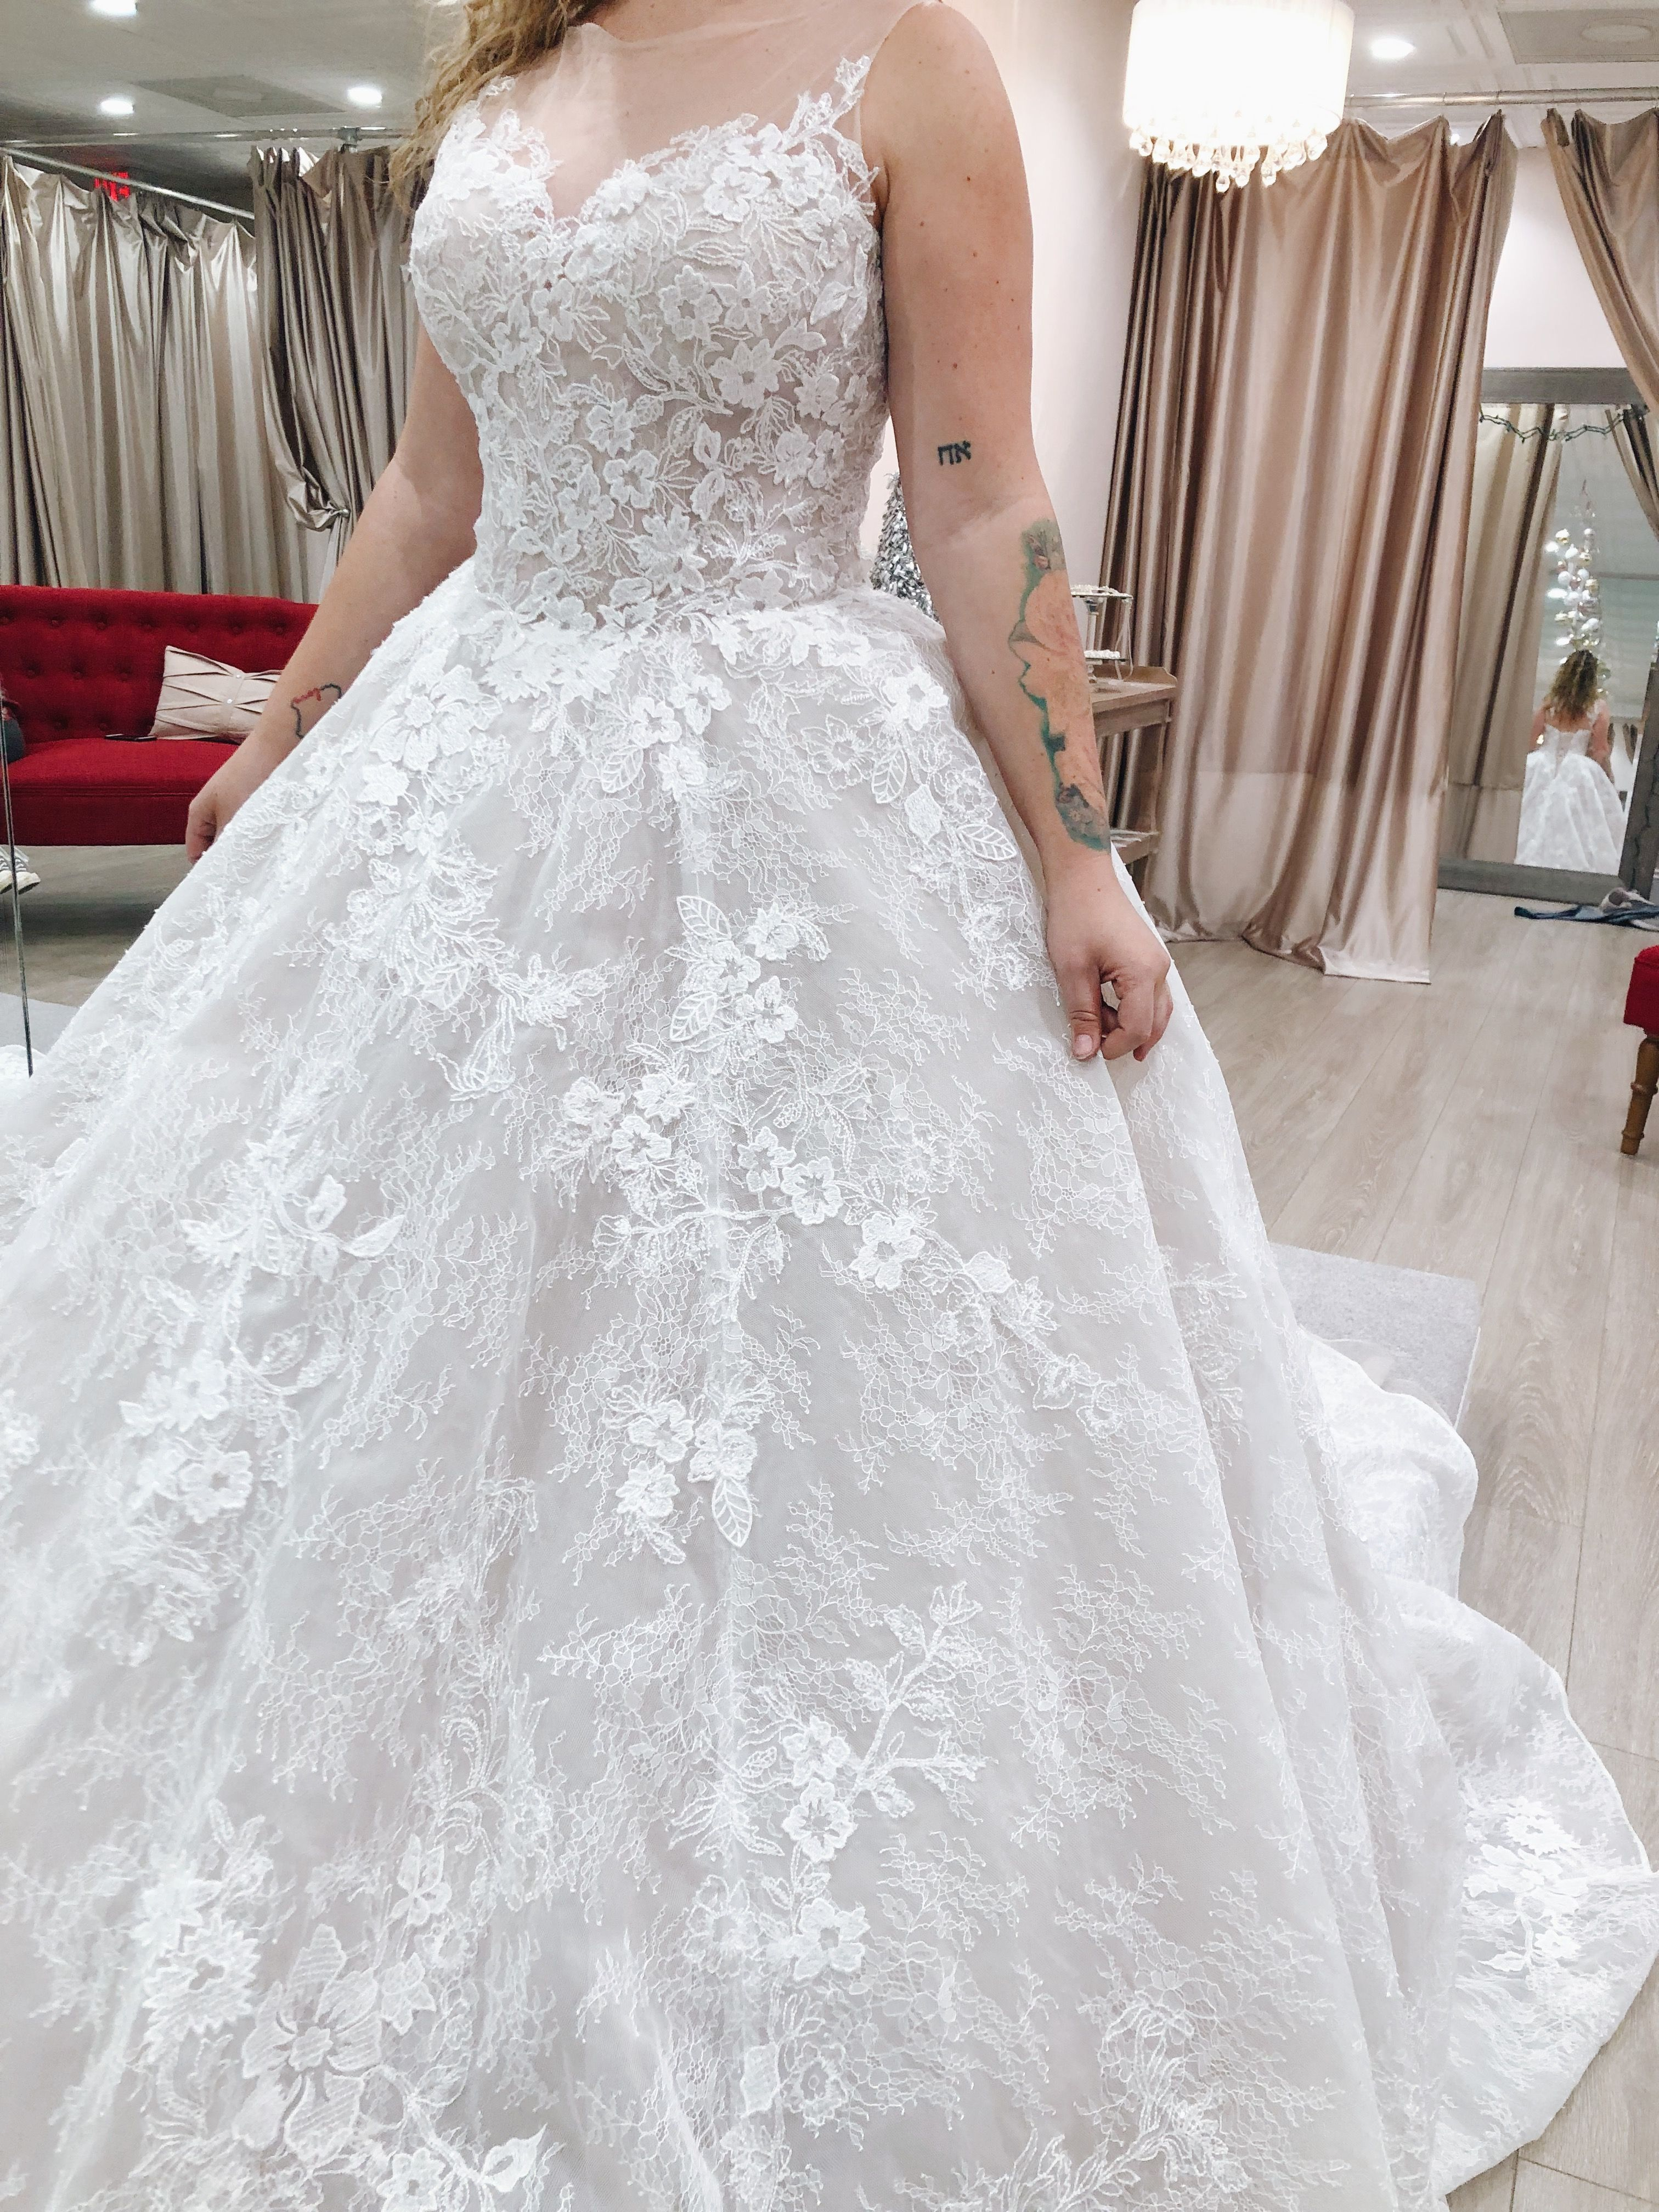 Aphrodite Is A Statement Wedding Dress With It S Blush Undertone And Unique Lace This Dress Plus Size Wedding Dresses With Sleeves Wedding Dresses Ball Gowns [ 4032 x 3024 Pixel ]